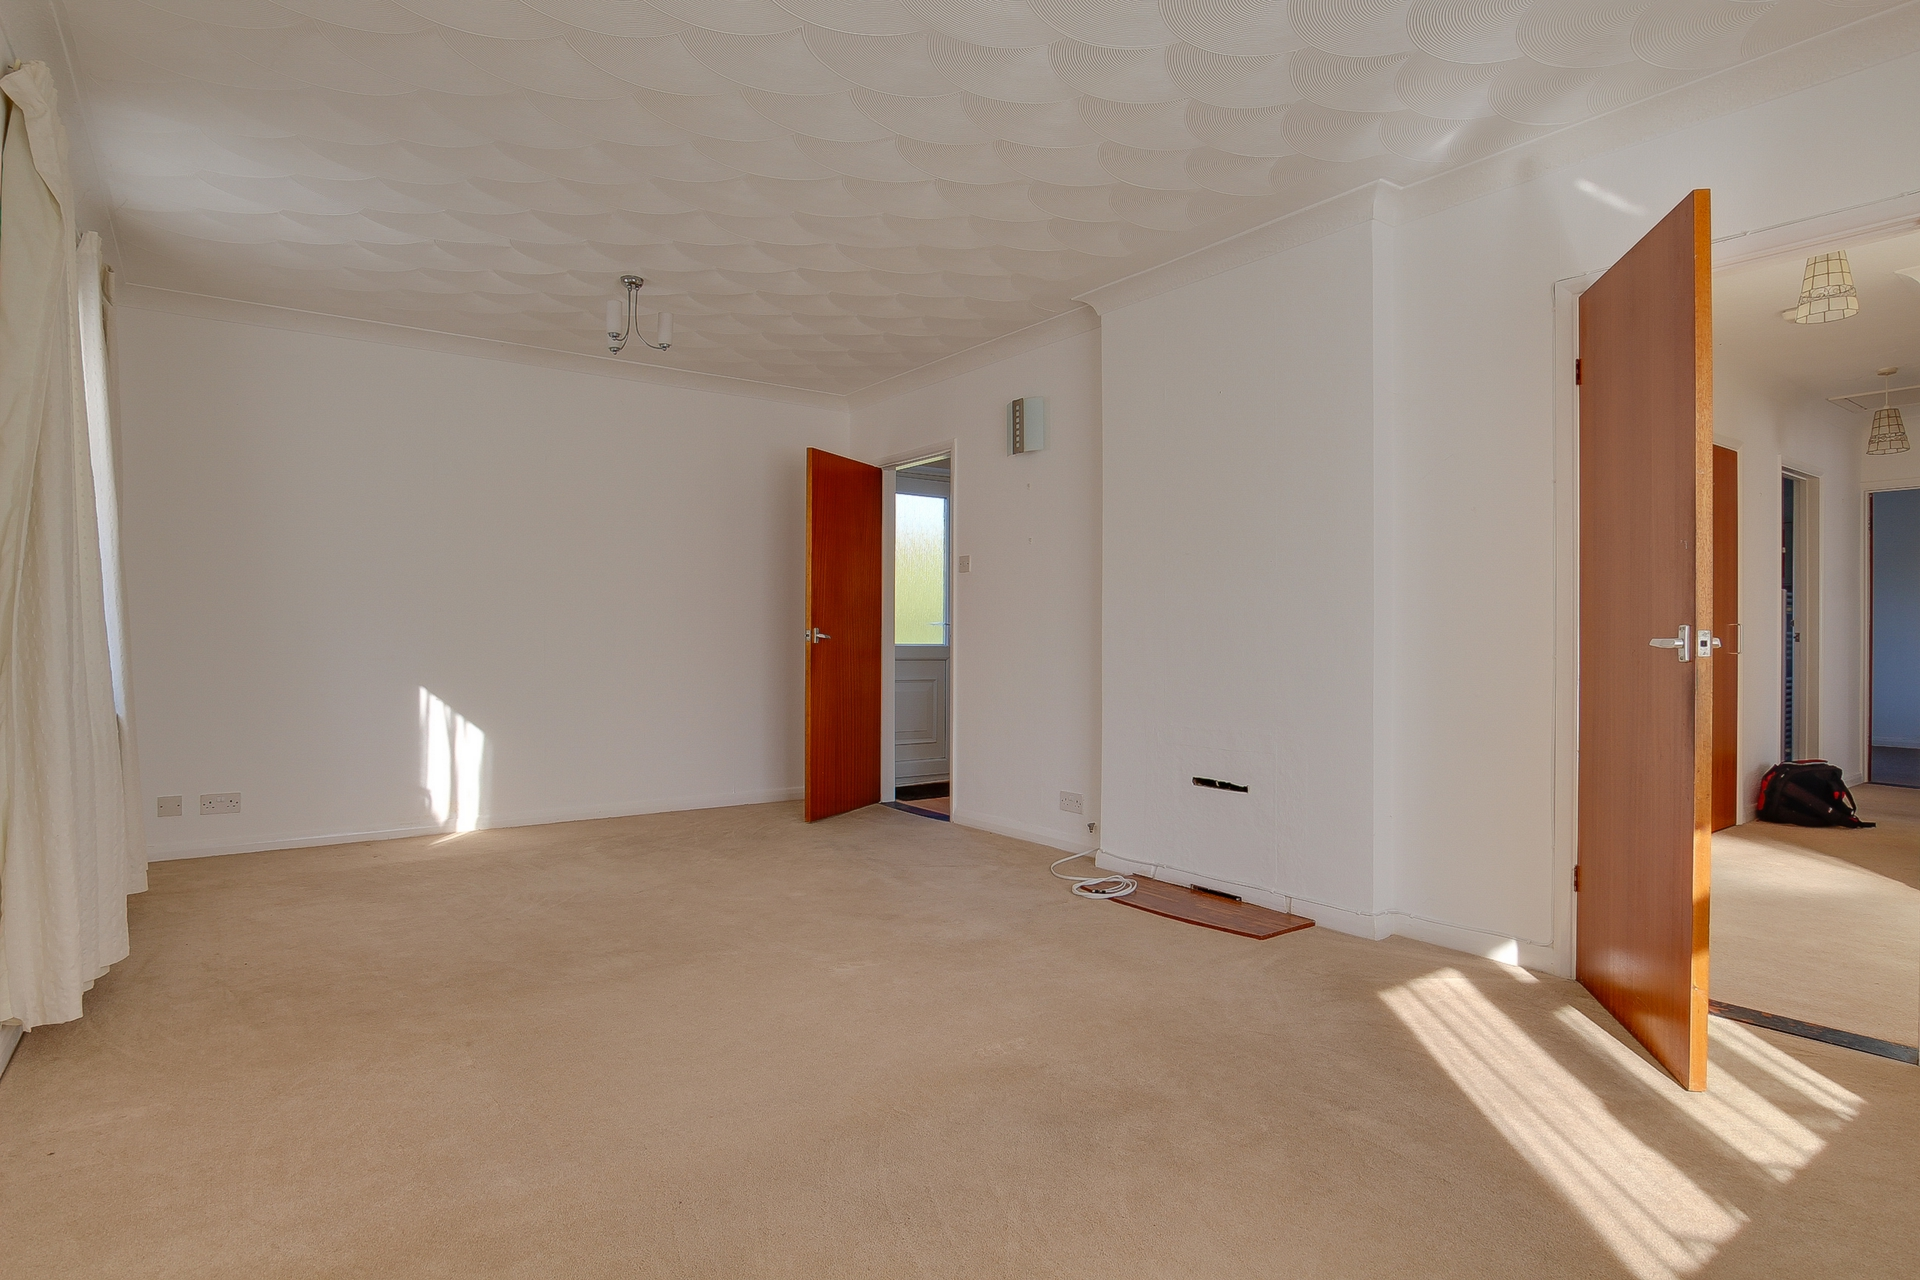 3 bed bungalow to rent in Cheesmans Close, Minster, CT12 4